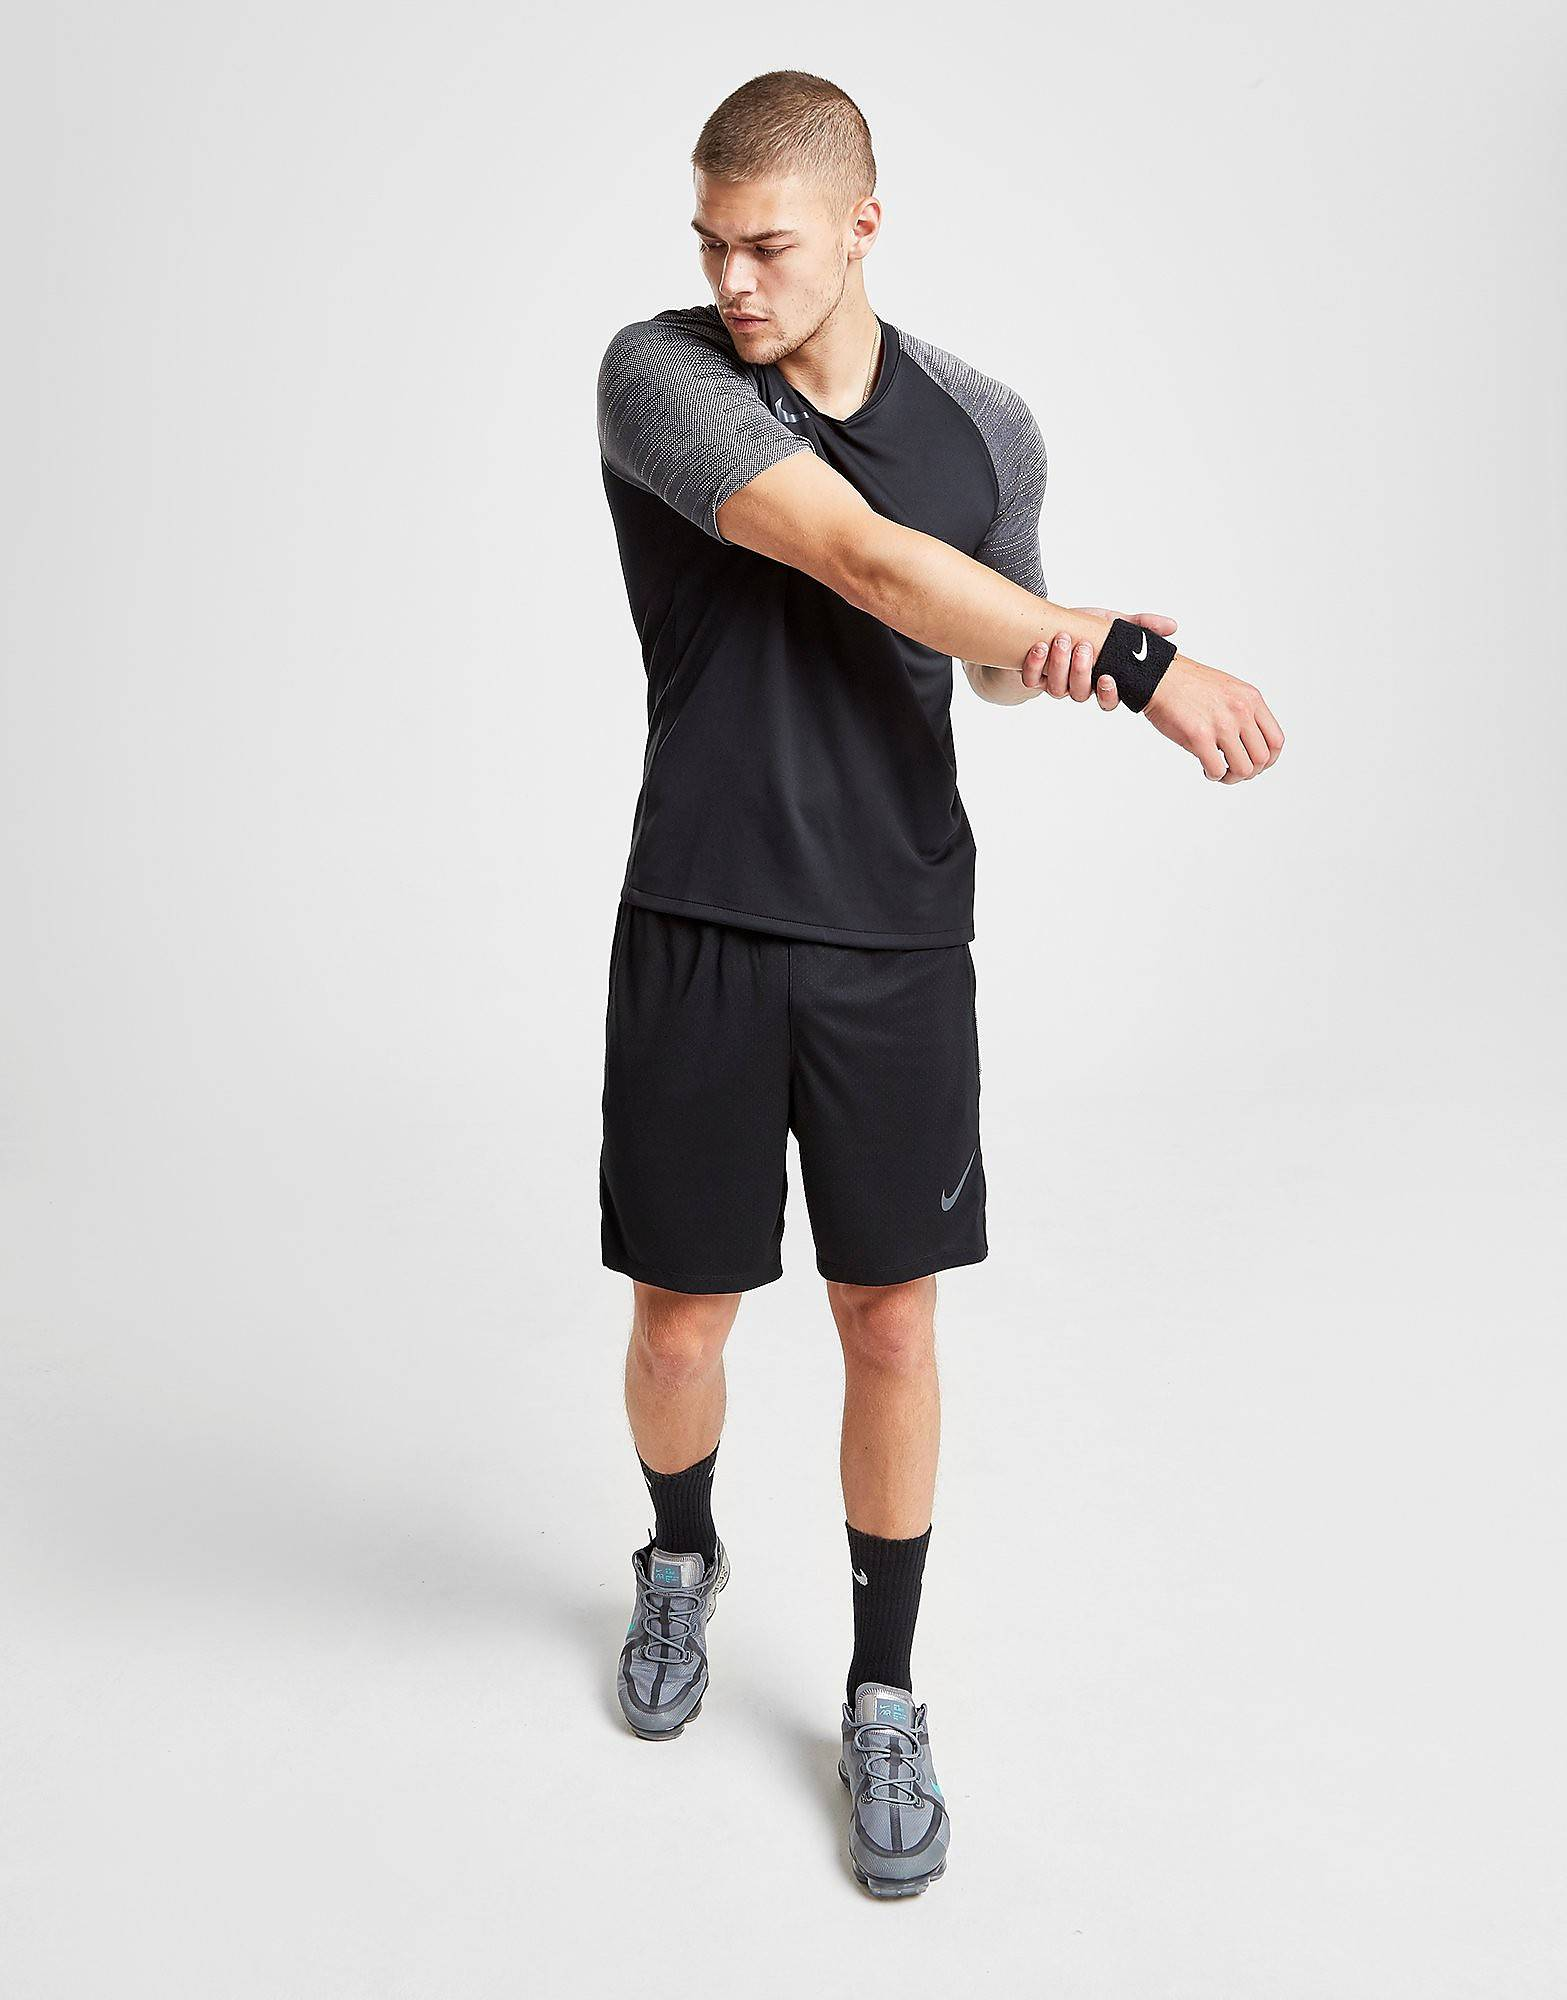 Image of Nike Strike Shorts - Mens, Musta